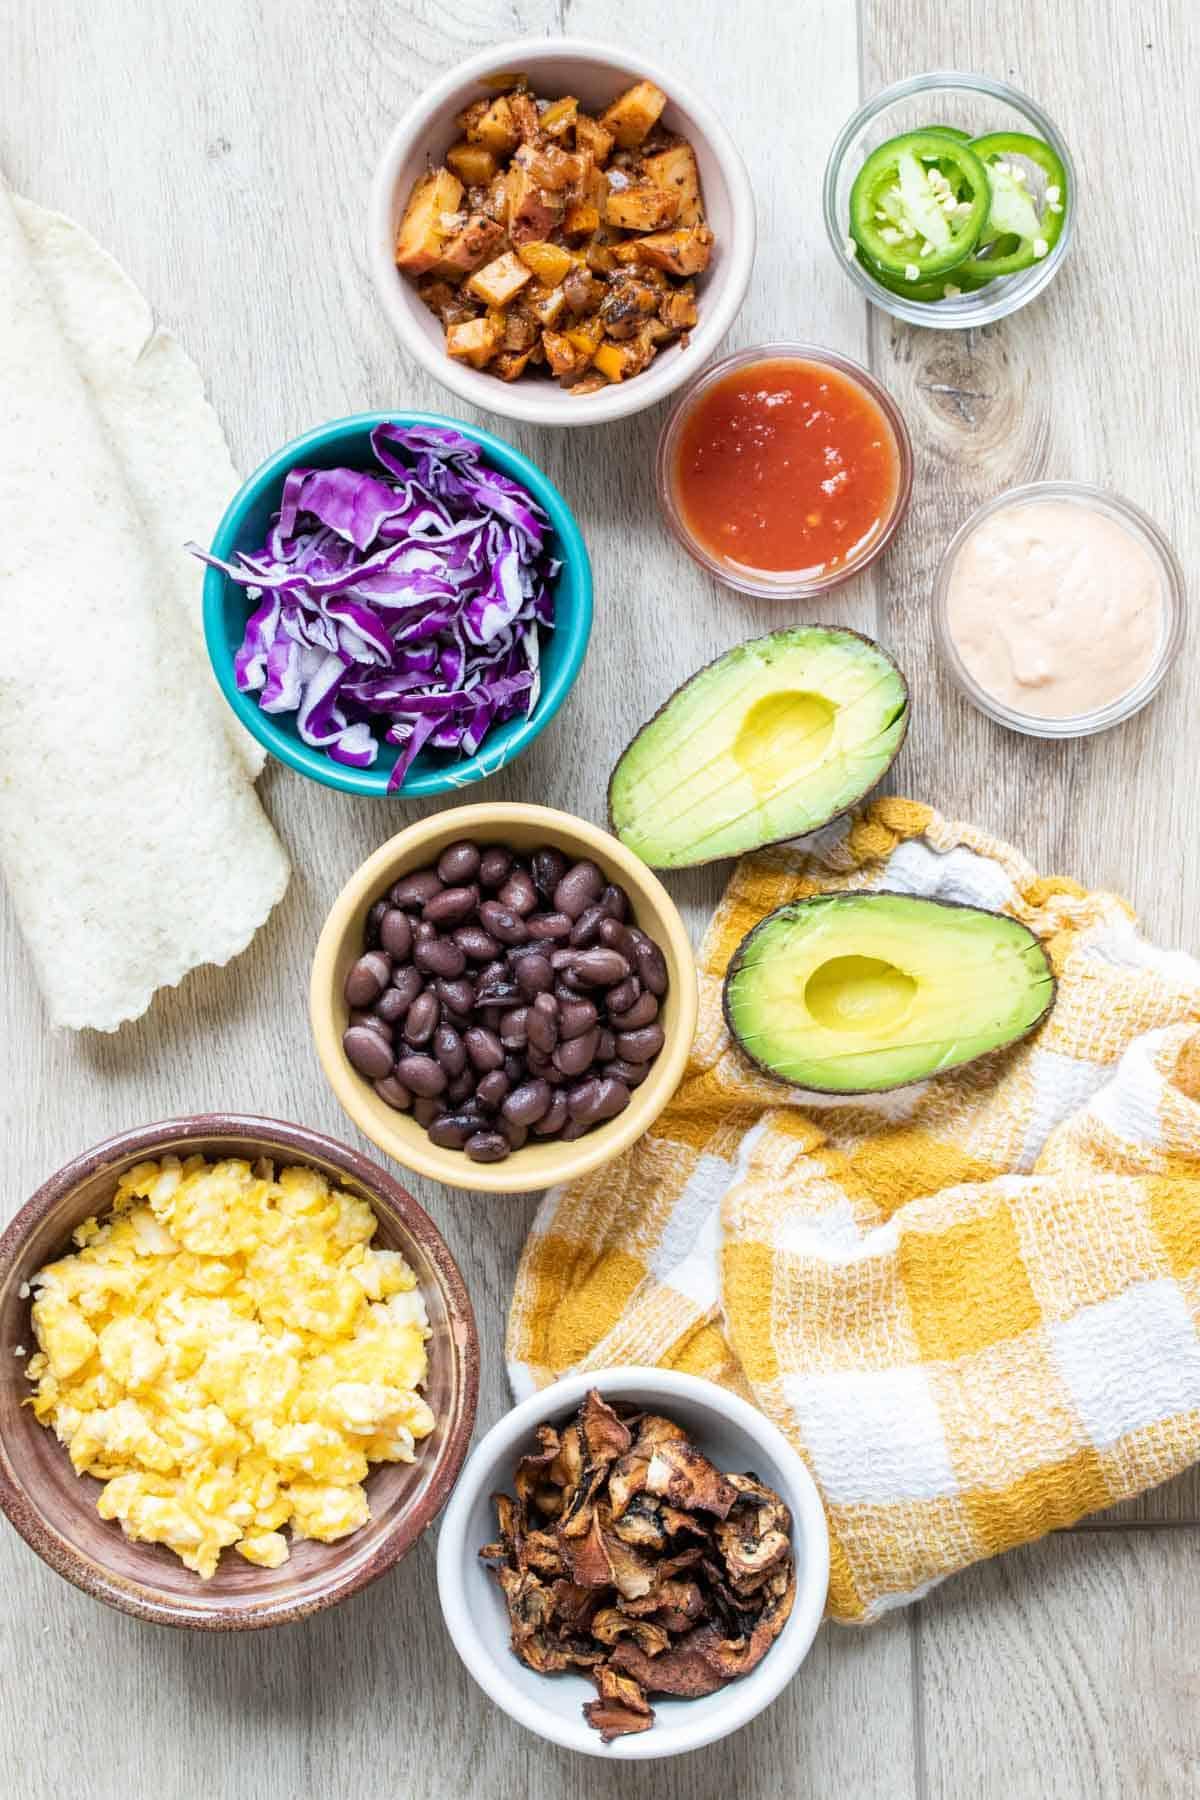 Bowls with ingredients to make breakfast burritos on a wooden surface and yellow checkered towel